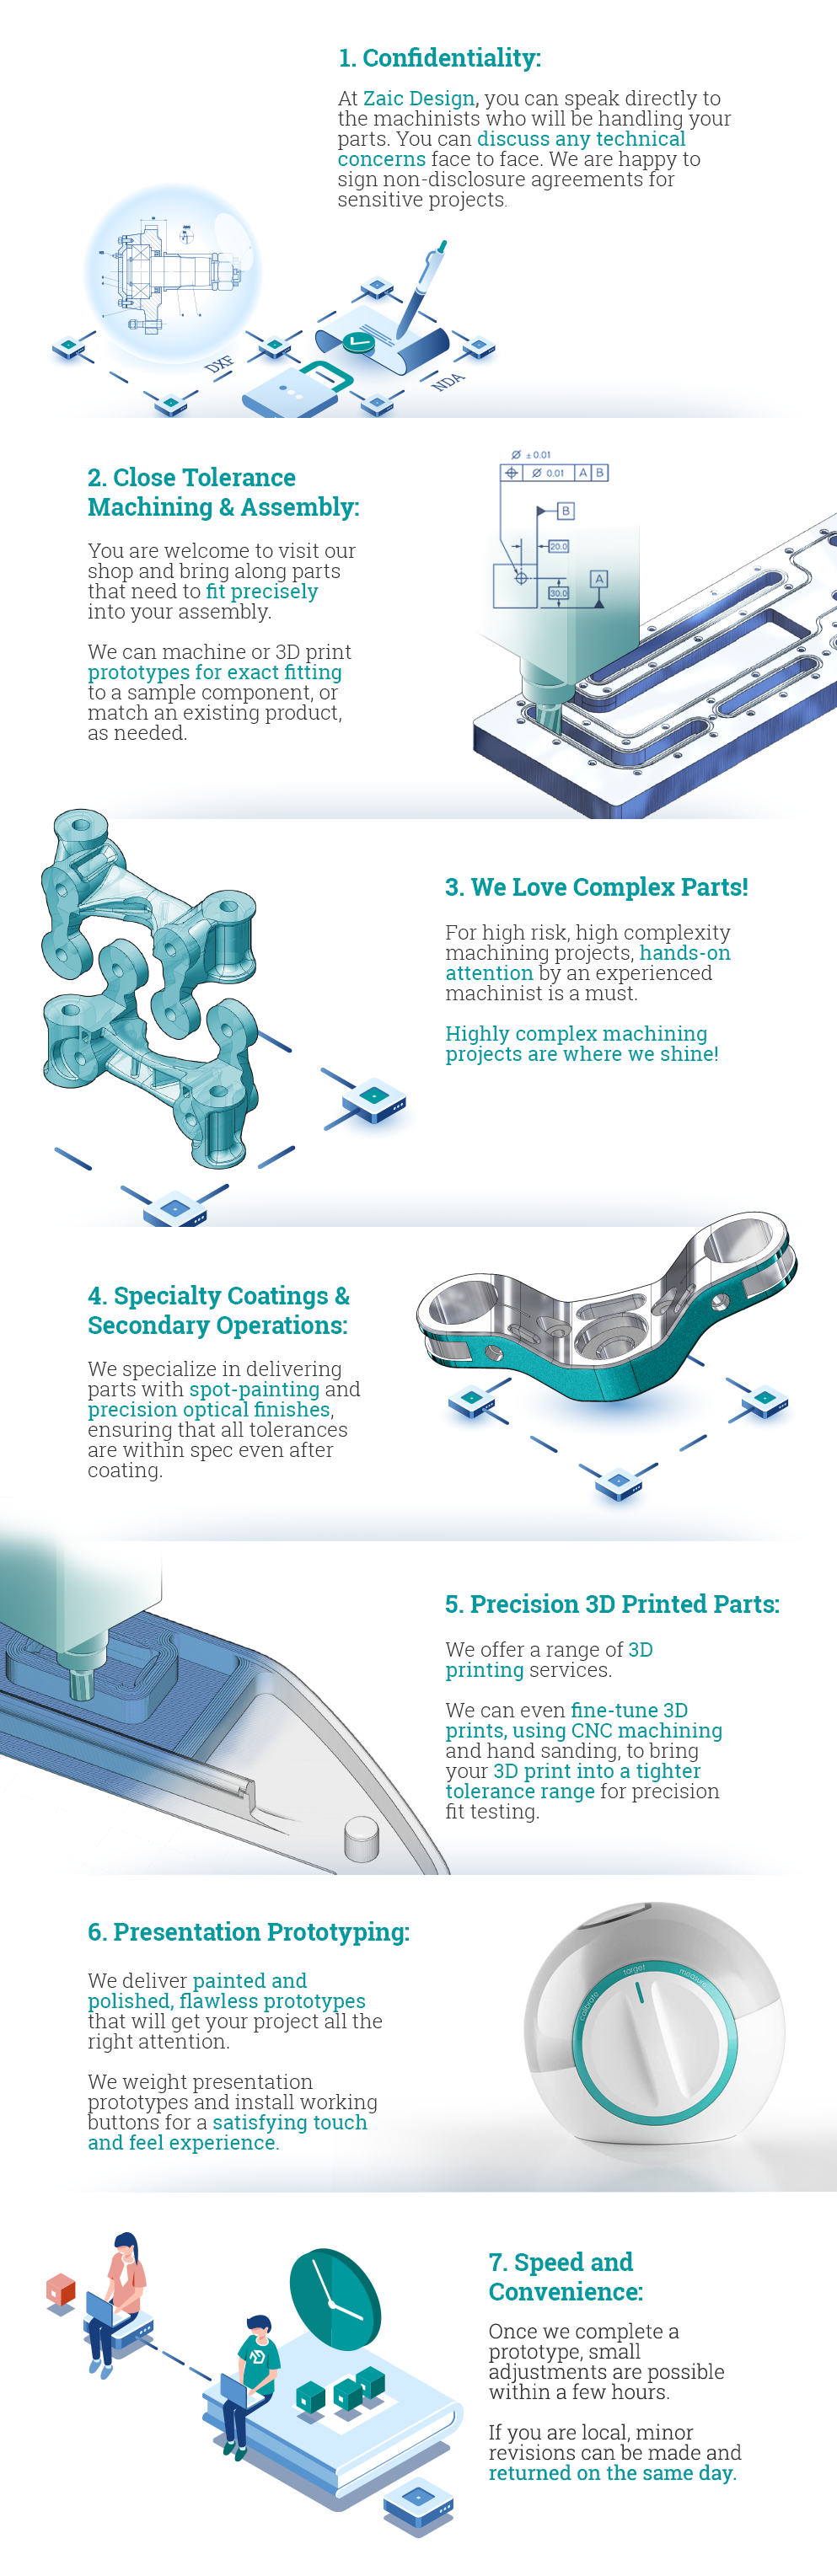 Infographic: 7 reasons to prototype with Zaic Design